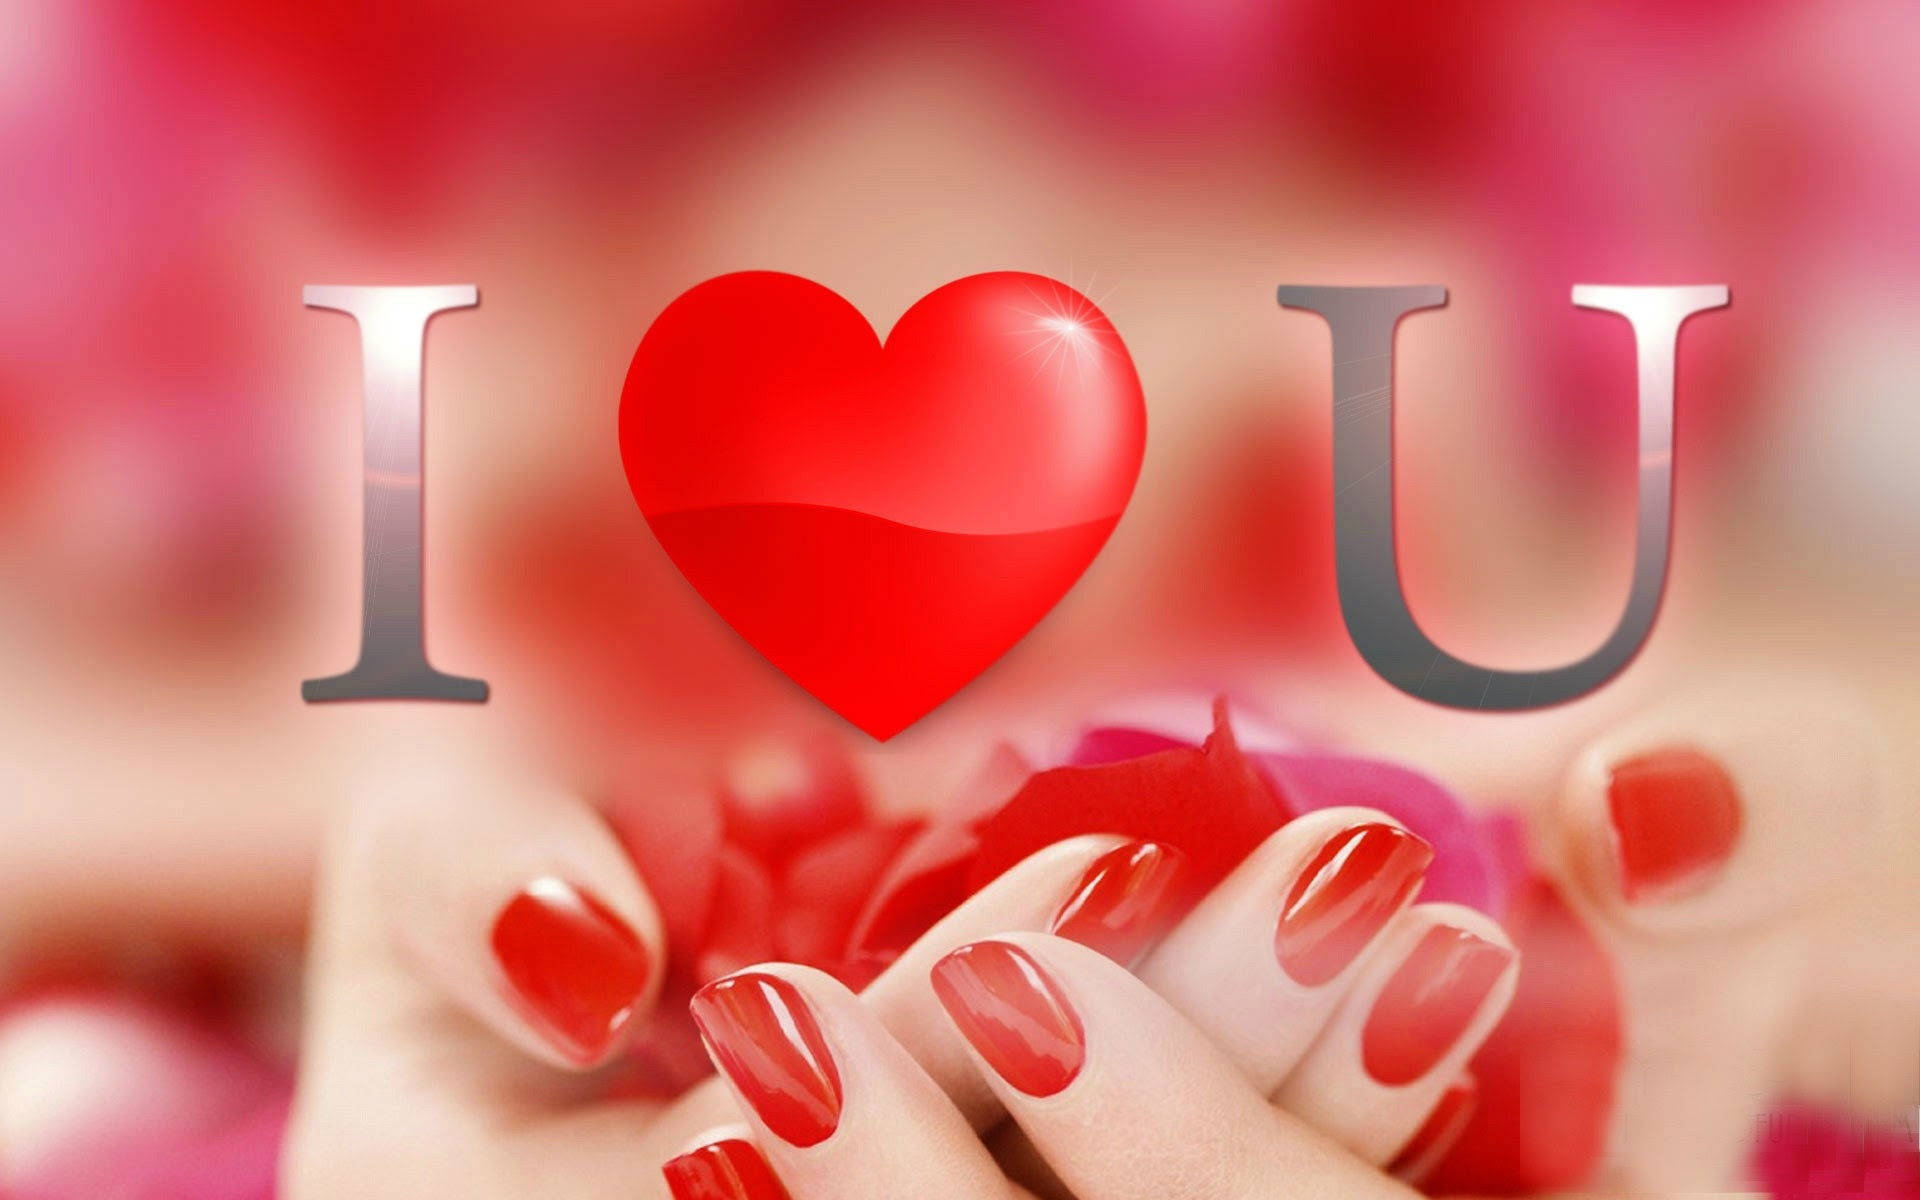 Best Love Wallpapers For Mobile Phones